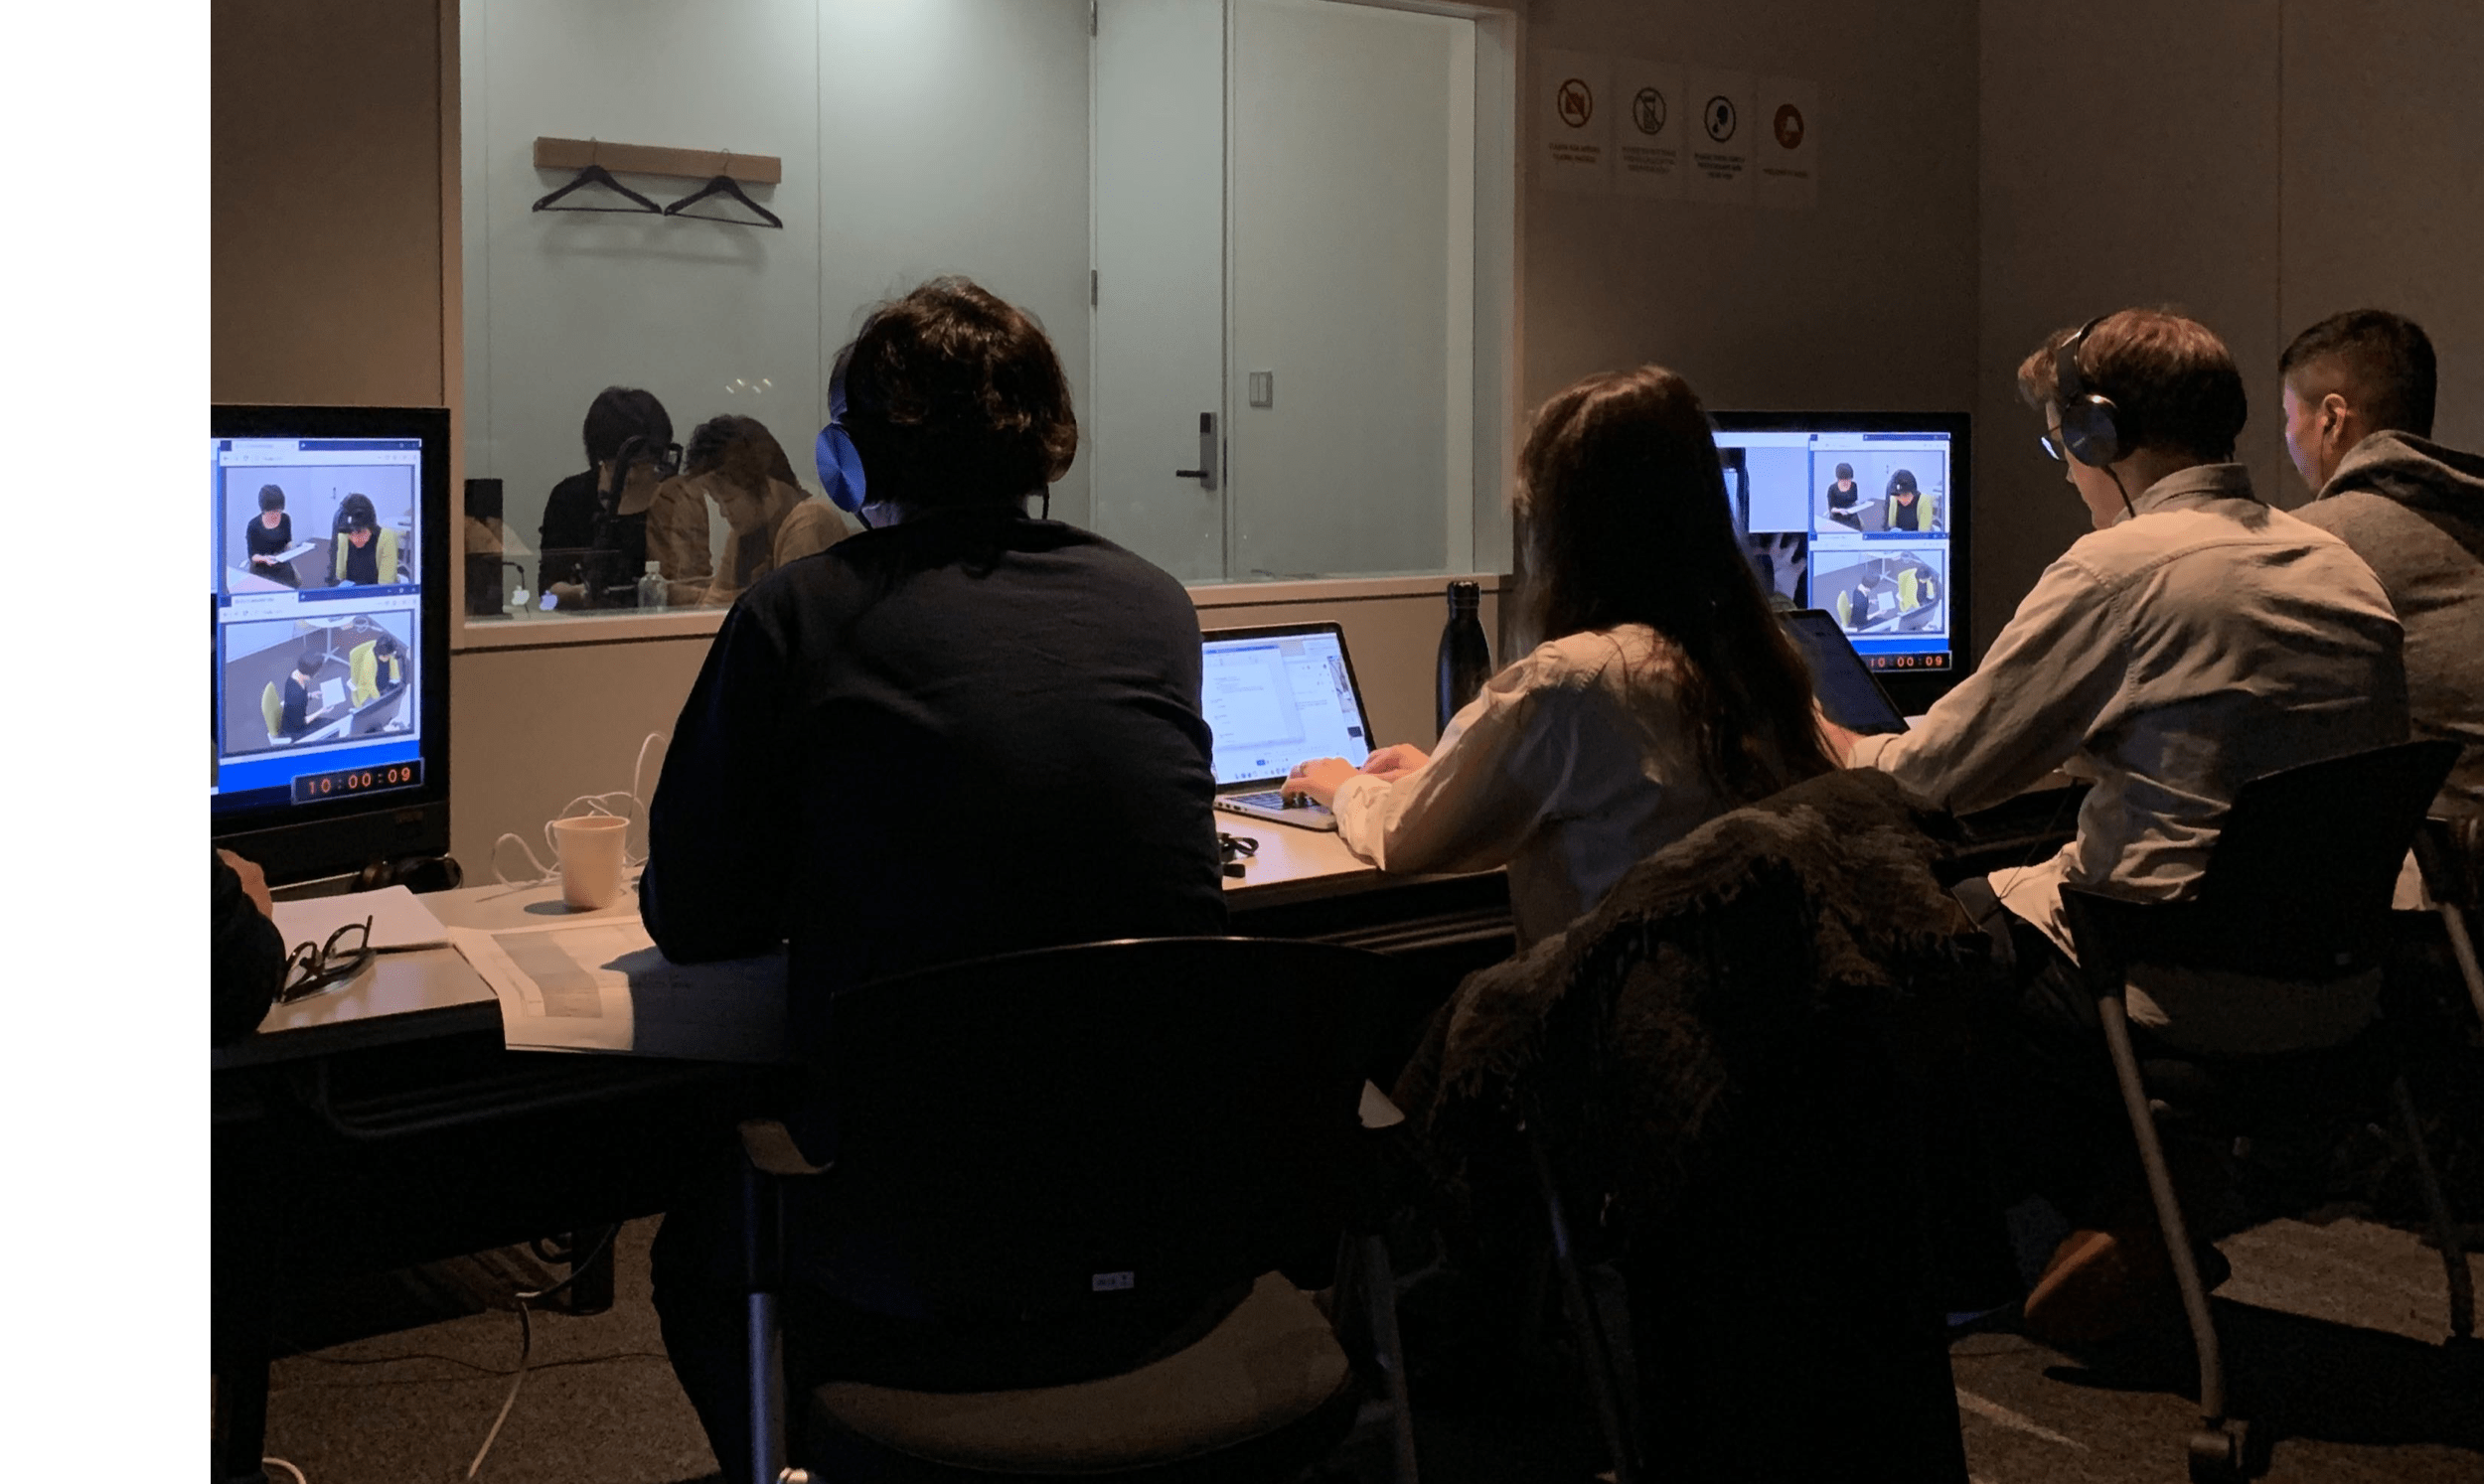 A group of people sitting at a desk in front of a computer